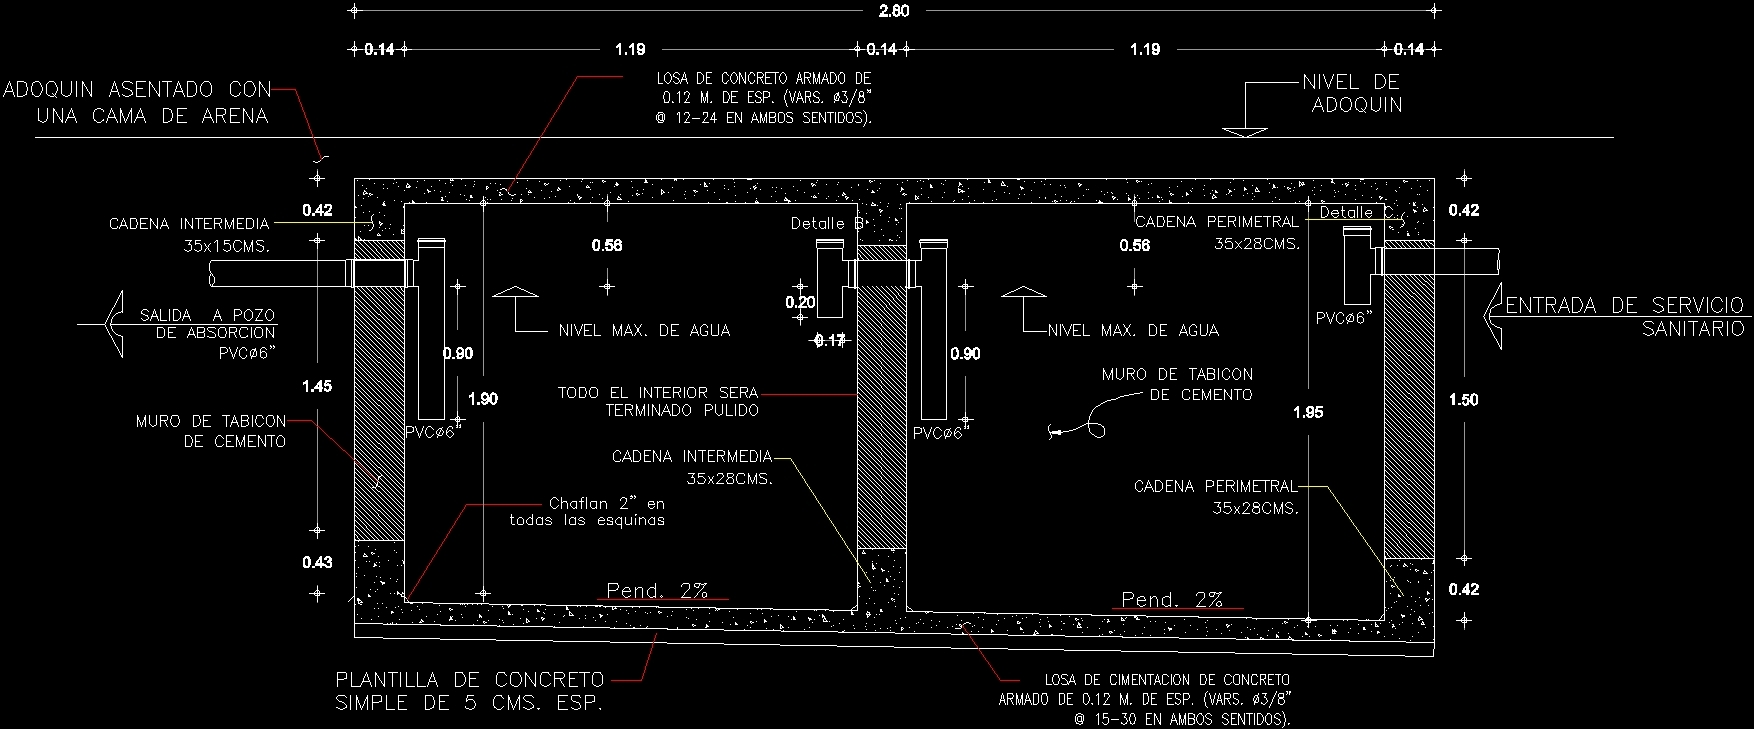 Tank Drawing In Autocad | gdlawct com